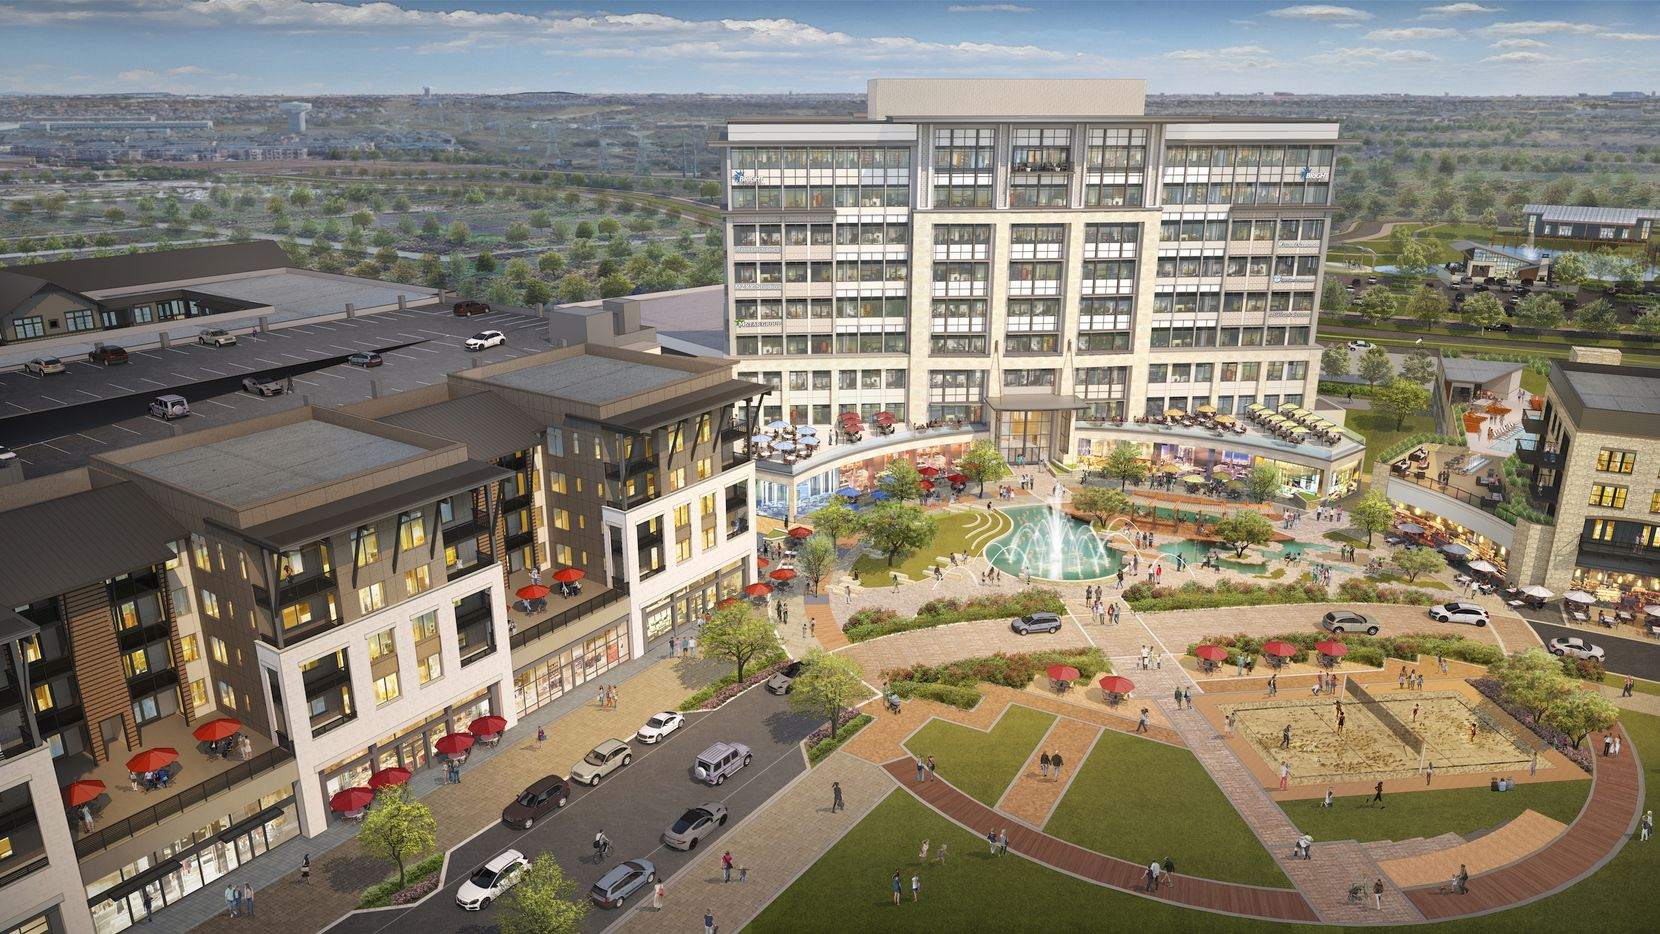 The 324-acre Realm at Castle Hills project will include office, retail, restaurants and apartments built around a public plaza and park.